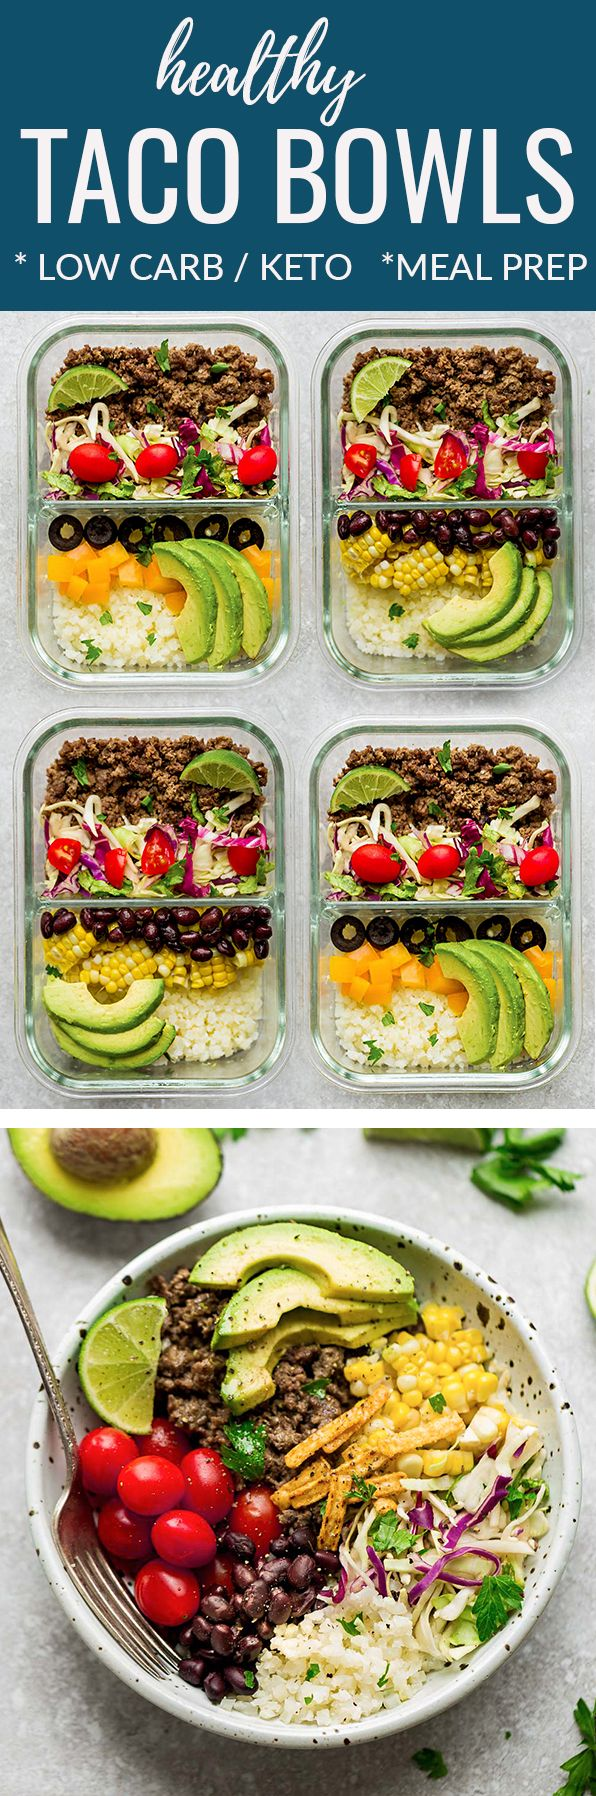 Healthy Taco Bowls - a quick & delicious 30 minute lunch or dinner perfect for busy weeknights. Best of all, ground turkey or beef is seasoned in a homemade Tex-Mex mix with keto & low carb options. Served with cauliflower rice, bell peppers & avocado. For non low carb serve with cilantro or brown rice or quinoa, corn and black beans. Works great for meal prep Sunday for work or school lunchboxes. #mealprep #keto #lowcab #tacos #mexican #tacotuesday #healthy #lunchbox